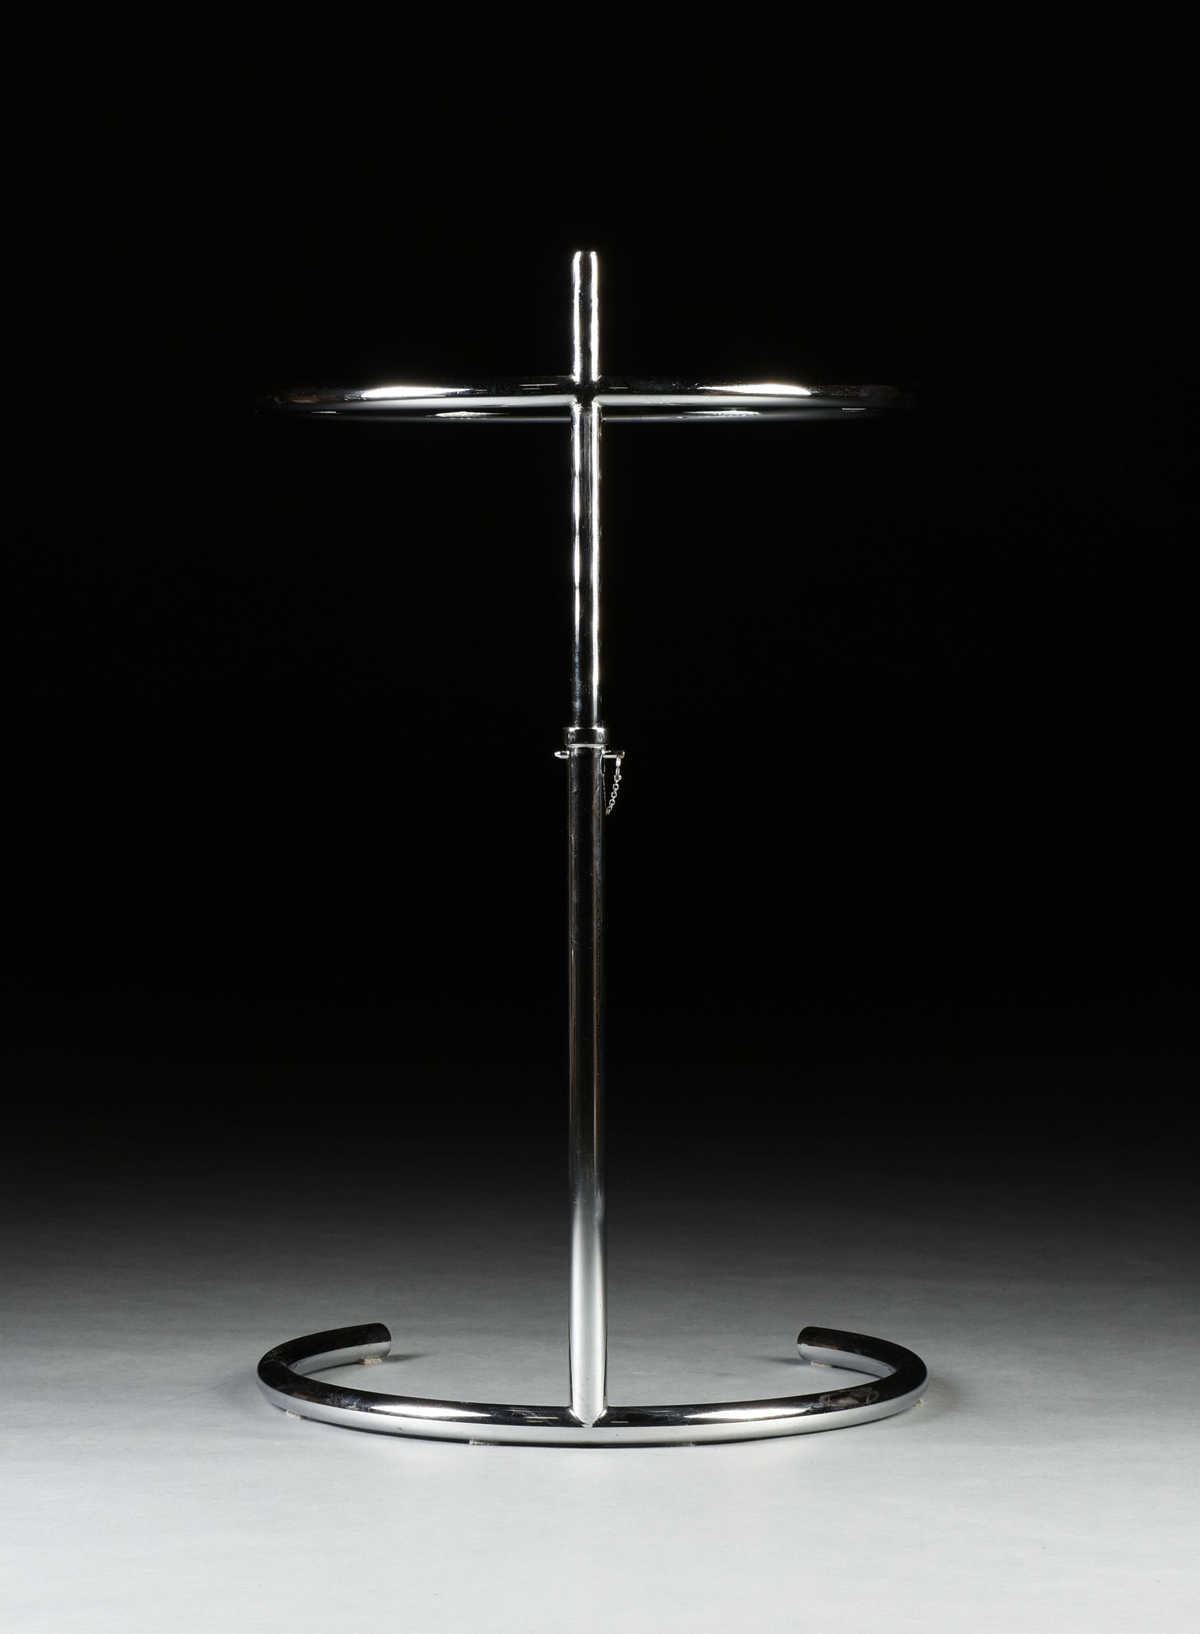 Lot 25 - AN EILEEN GRAY ADJUSTABLE GLASS AND CHROME CIRCULAR SIDE TABLE, MODEL NUMBER 1027, 1960s, the